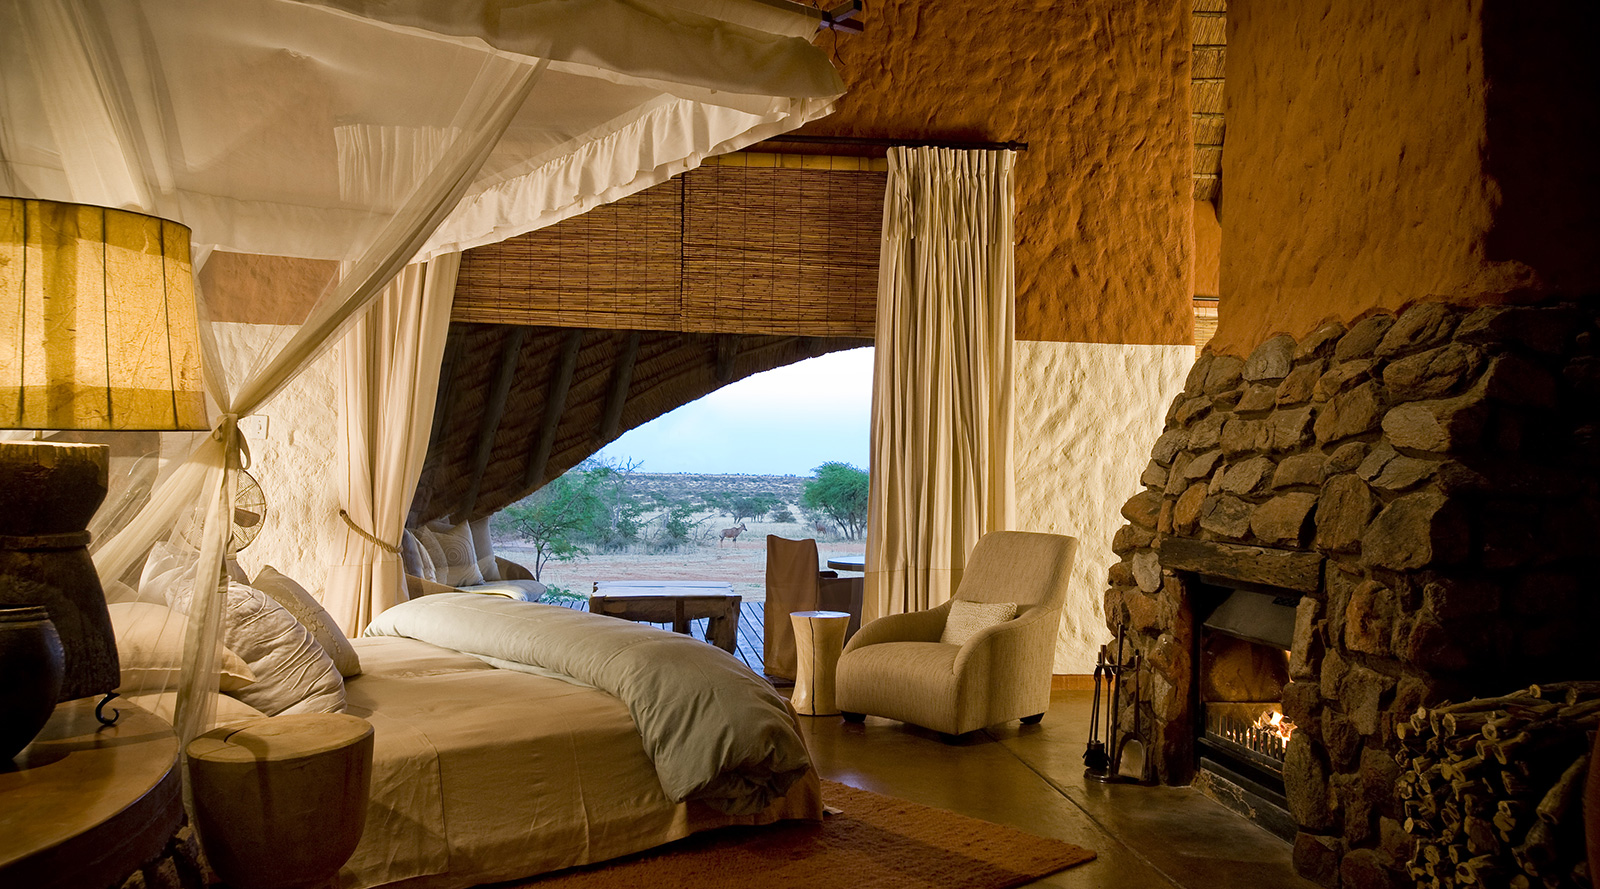 © Tswalu Kalahari Private Game Reserve | Tswalu Kalahari Private Game Reserve, South Afric